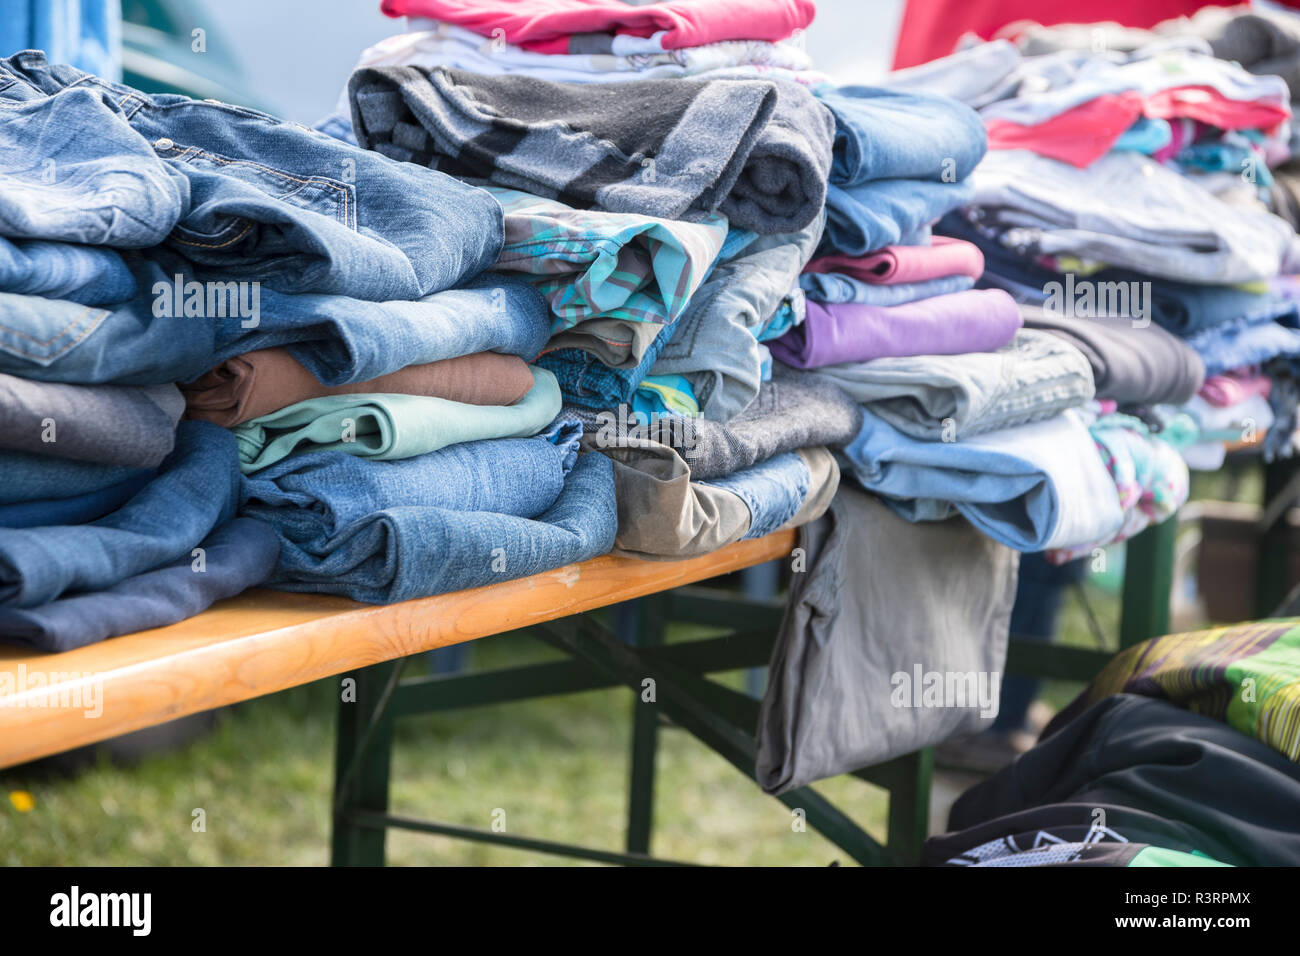 clothing collection like jeans, shirts and sweaters for the indigent or for sale at a flea market, selected focus, narrow depth of field - Stock Image